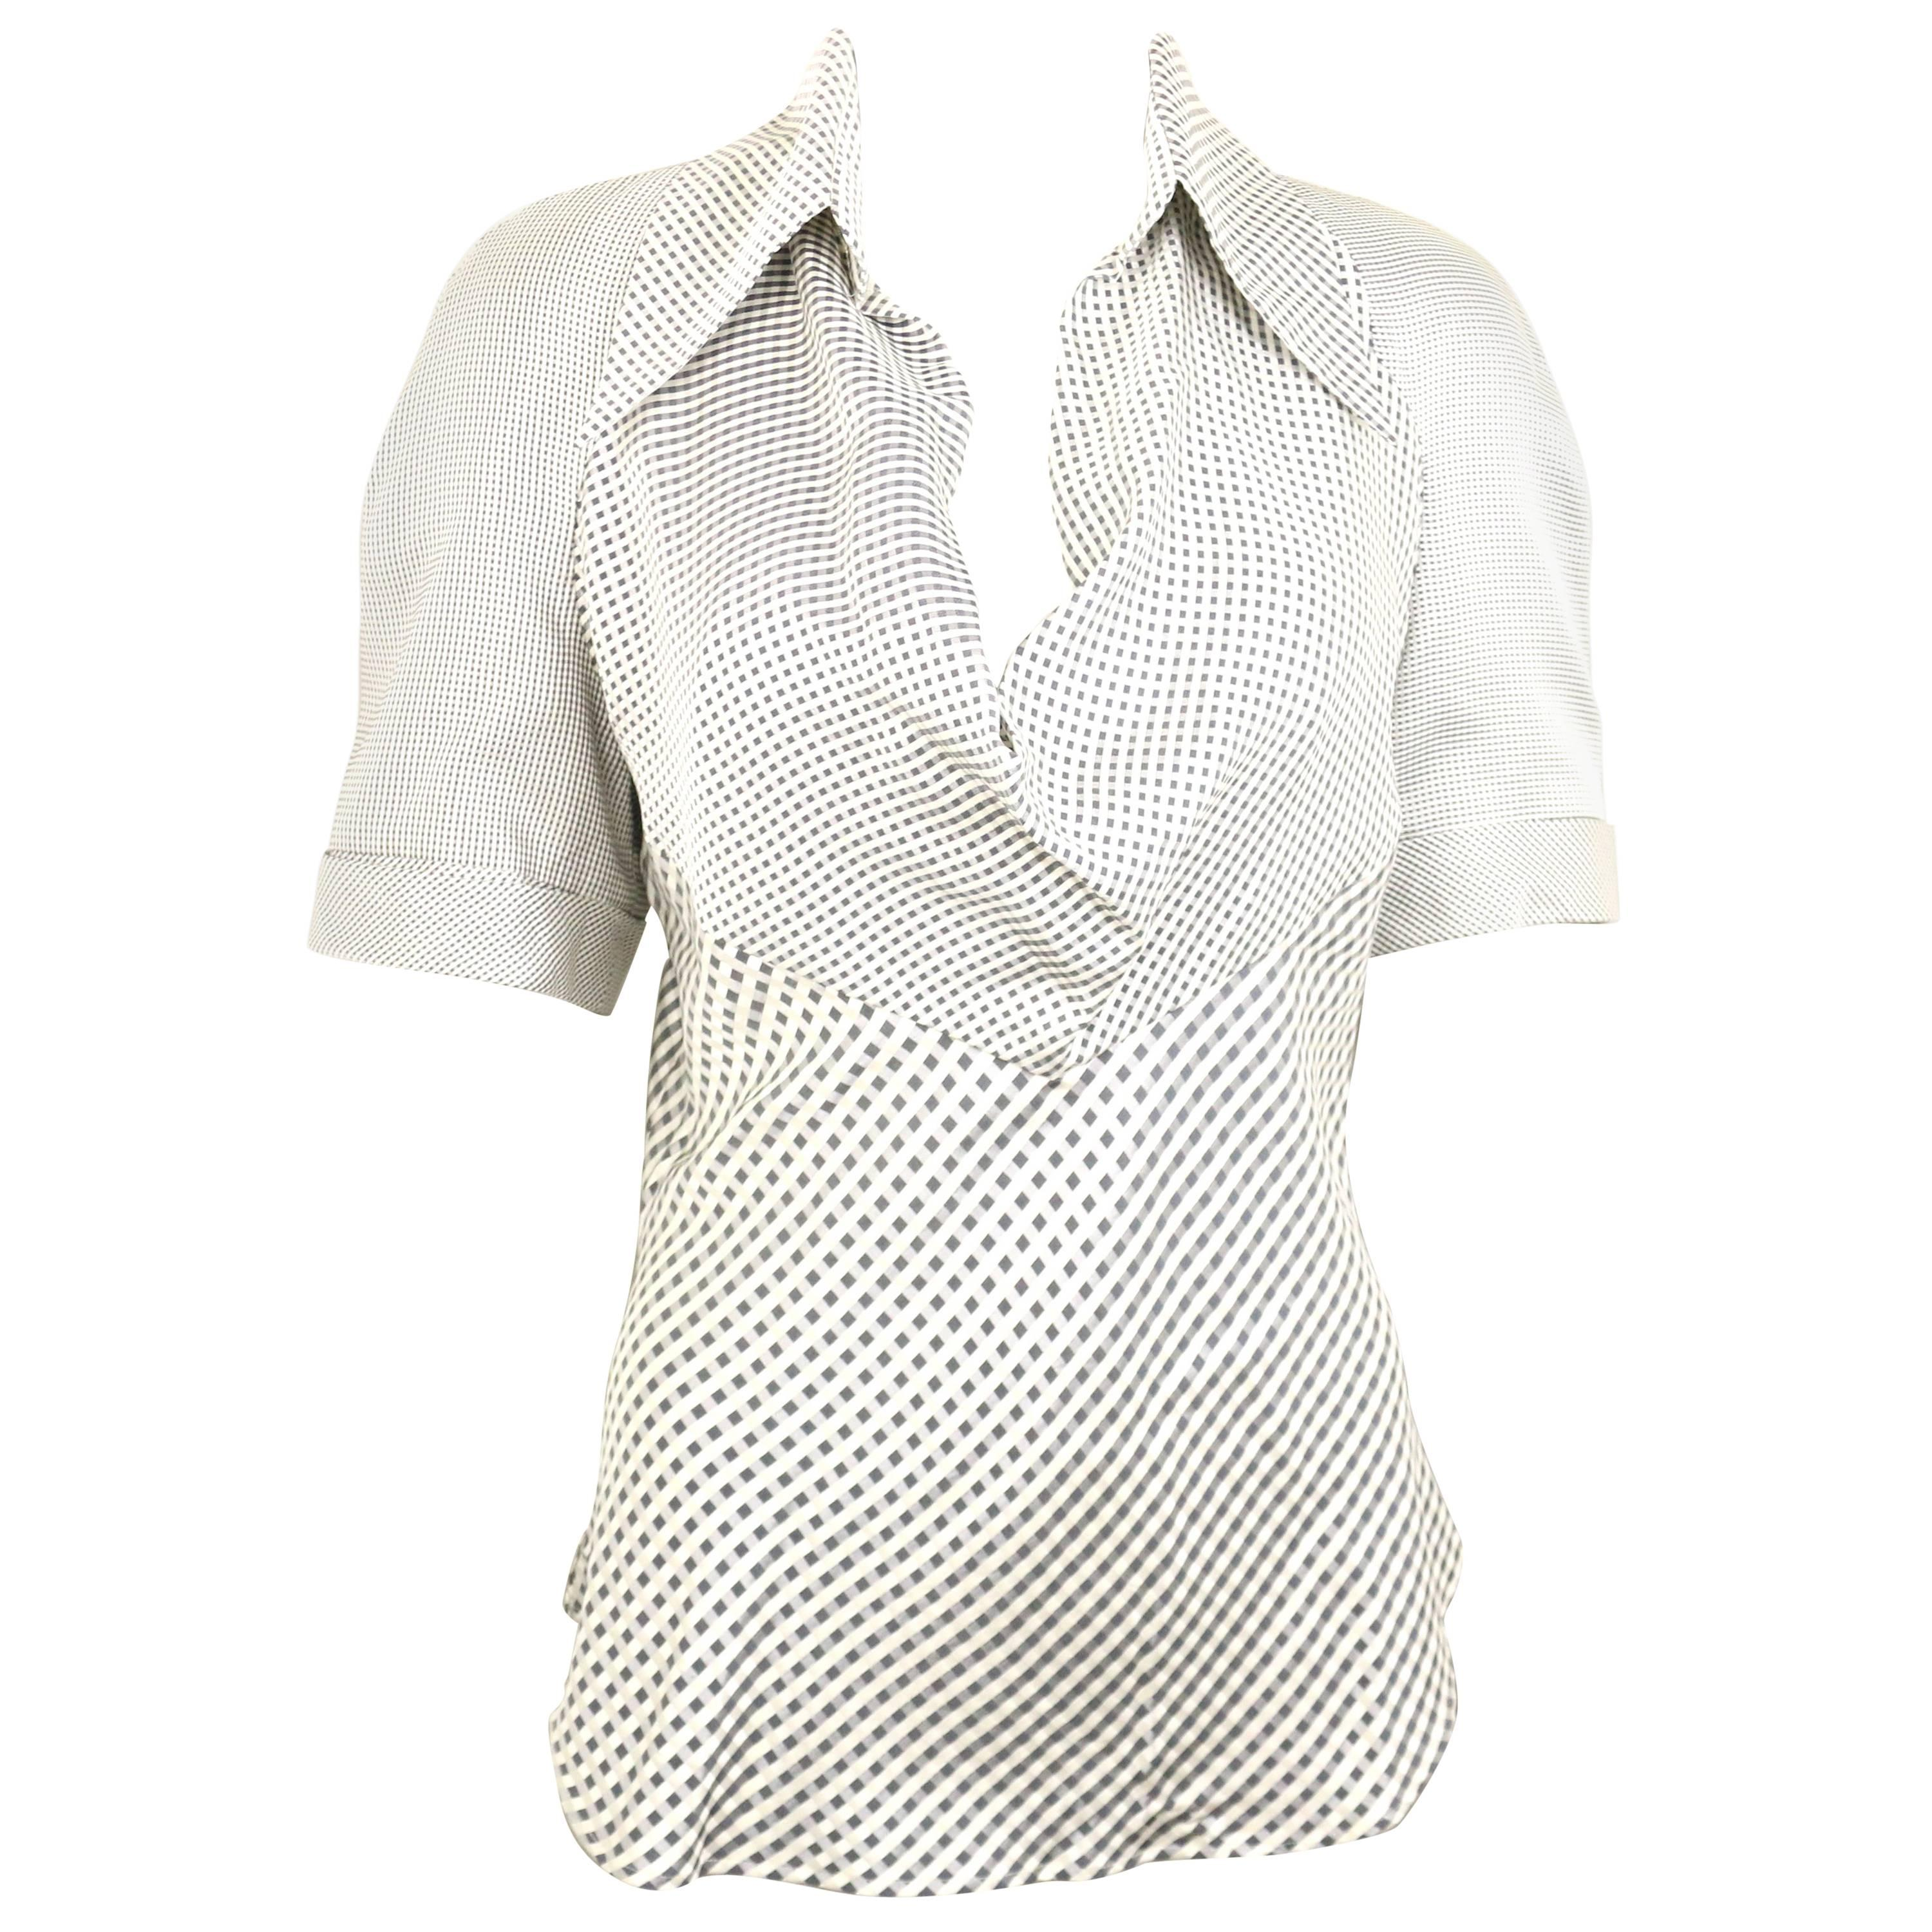 Givenchy Couture by Alexander McQueen Black and White Silk Check Collar Blouse